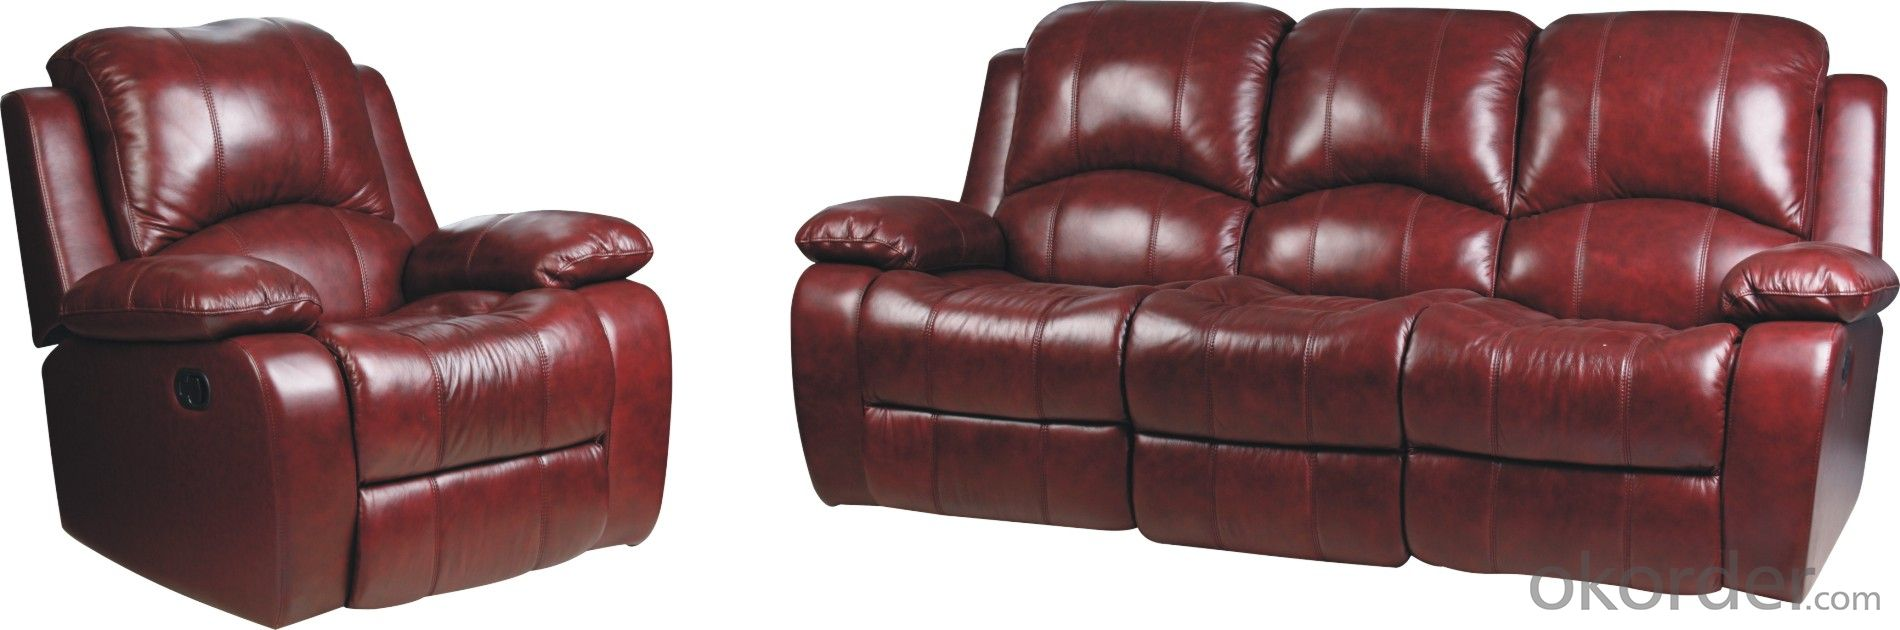 Modern recliner sofa real import leather